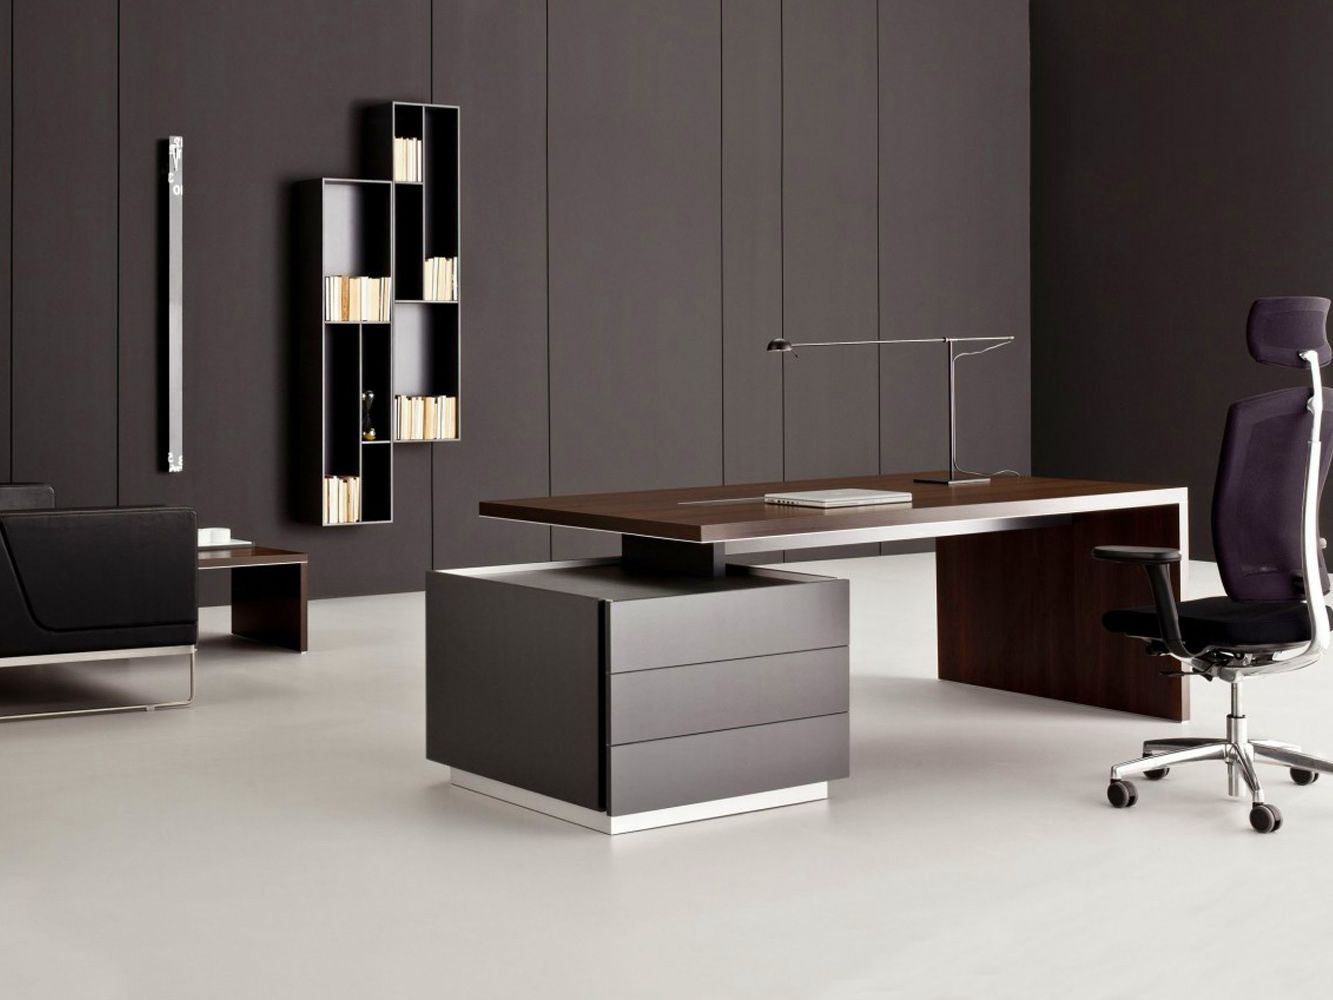 Modern Executive High End Office Furniture Ideas Wallpaper